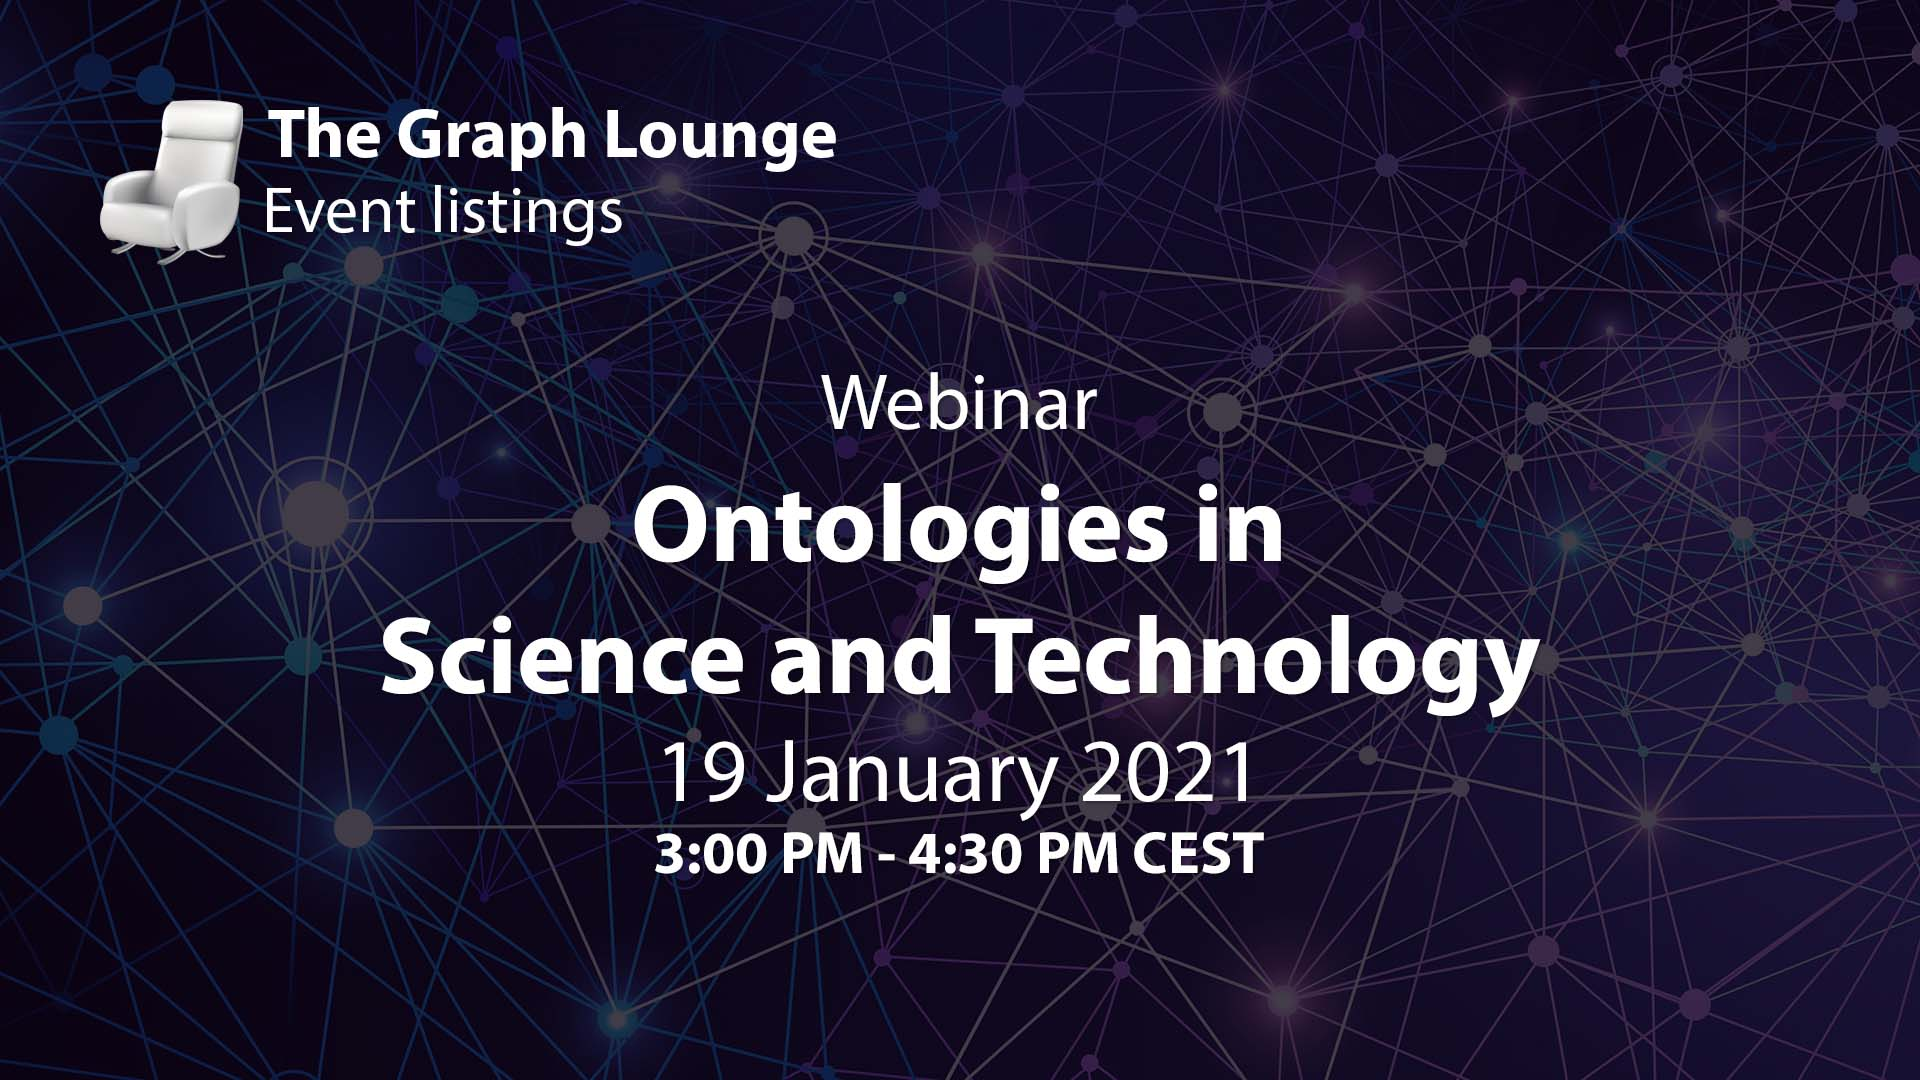 Ontologies in Science and Technology